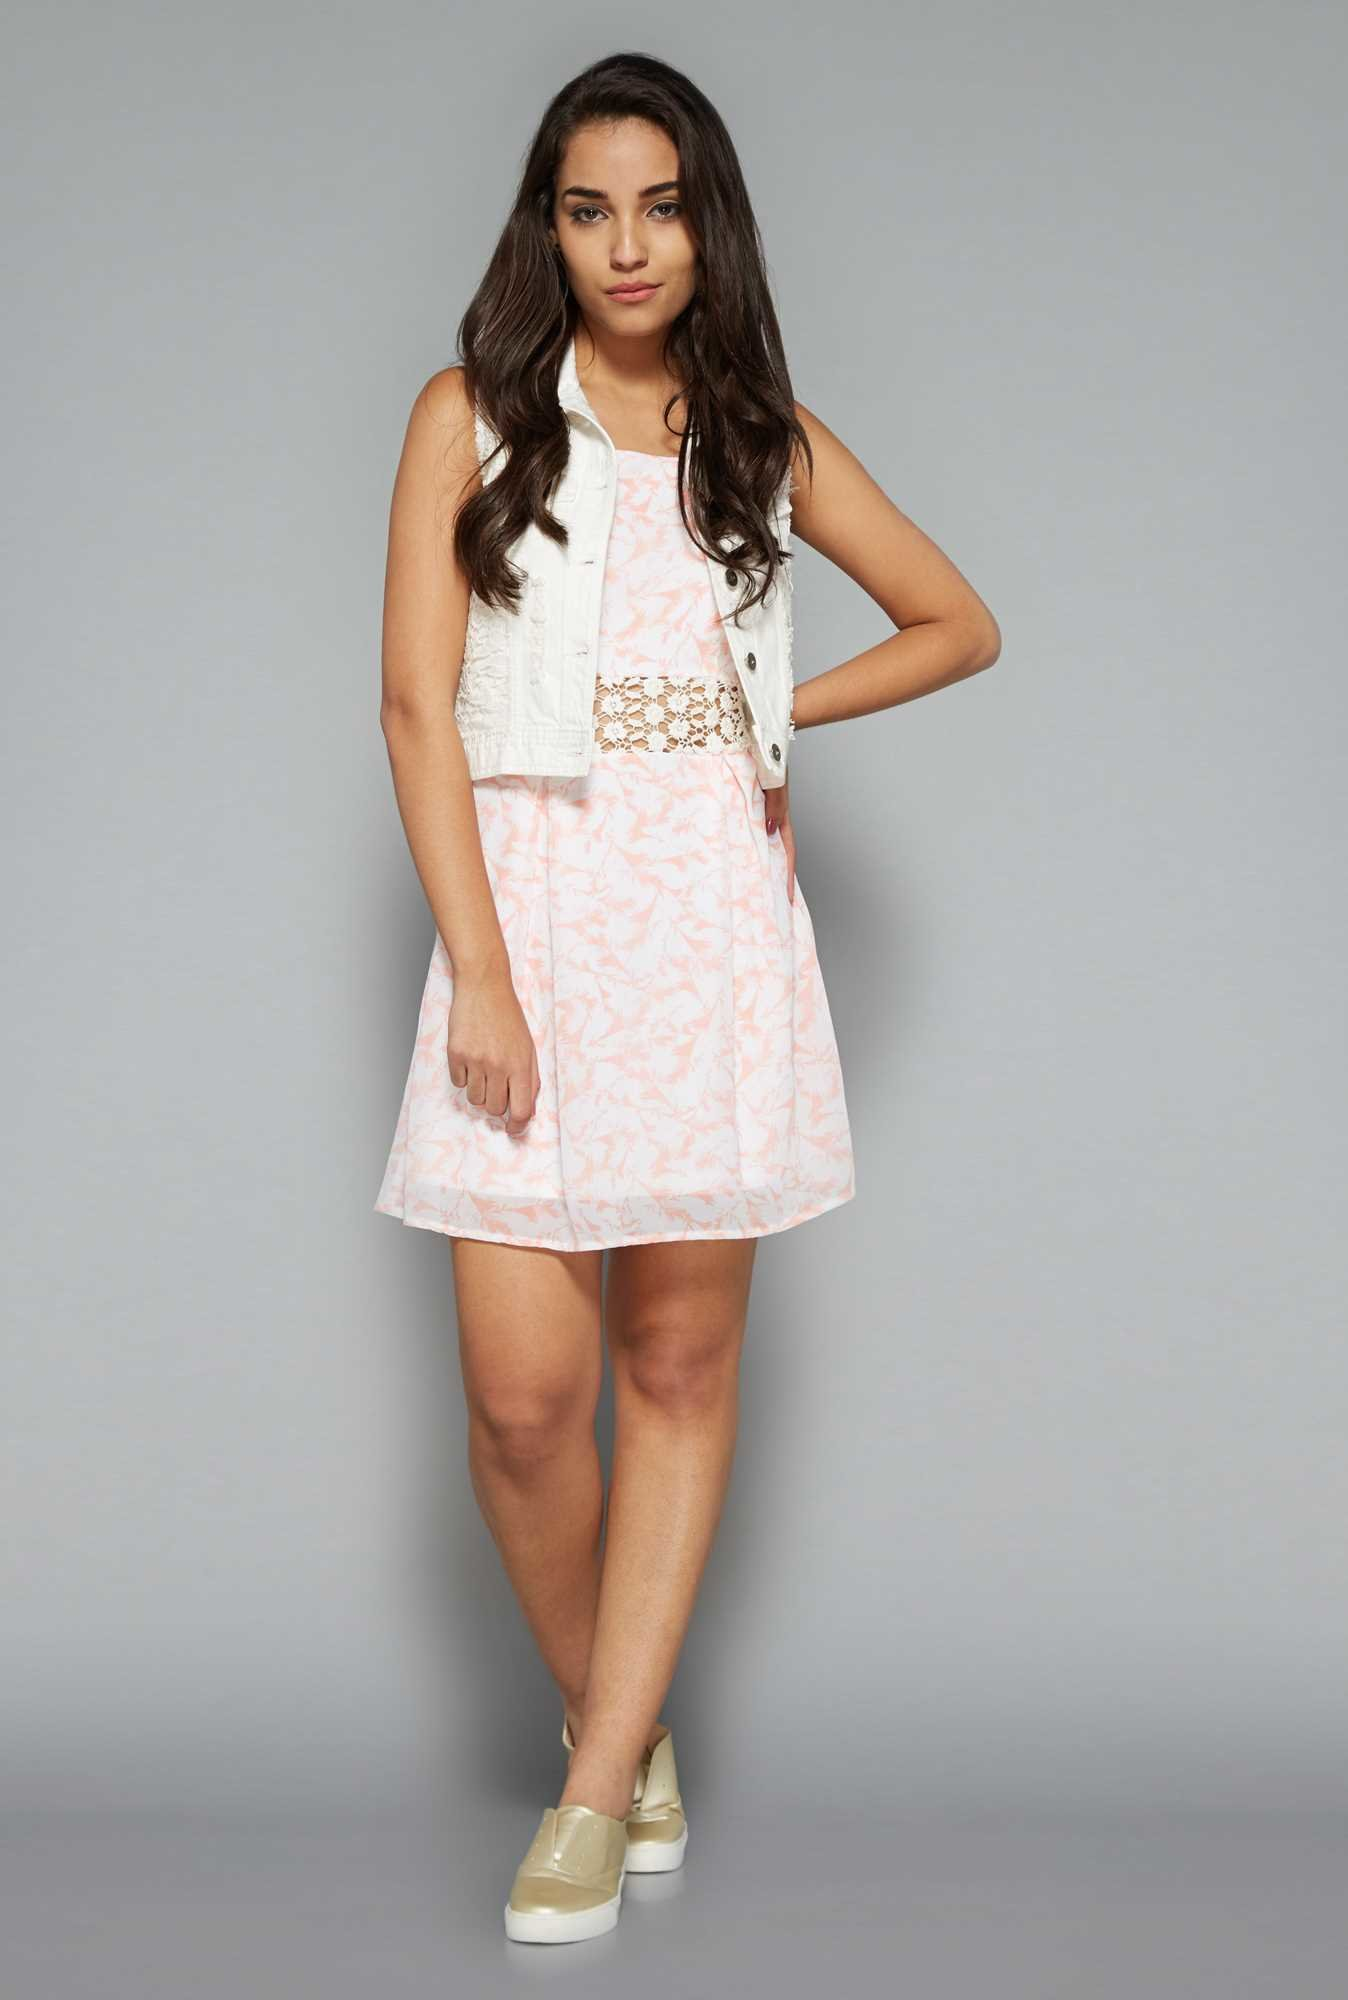 Nuon by Westside Pink Lace Dress